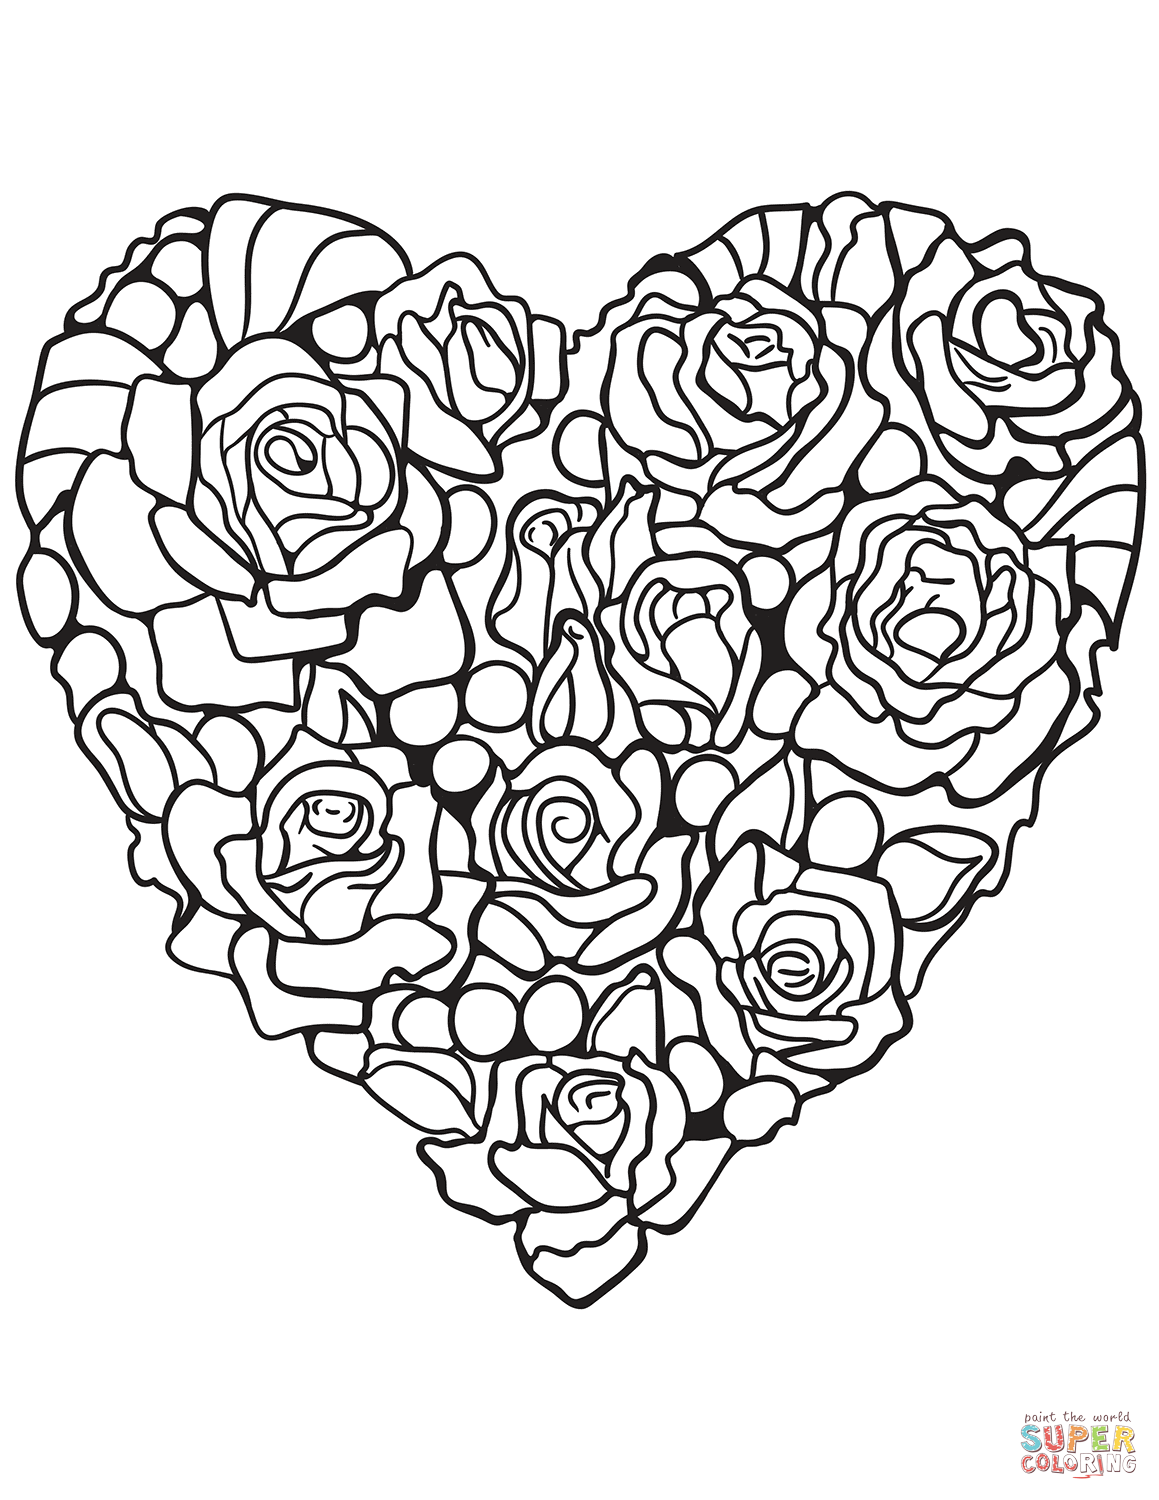 Heart Made of Rose Super Coloring Rose coloring pages